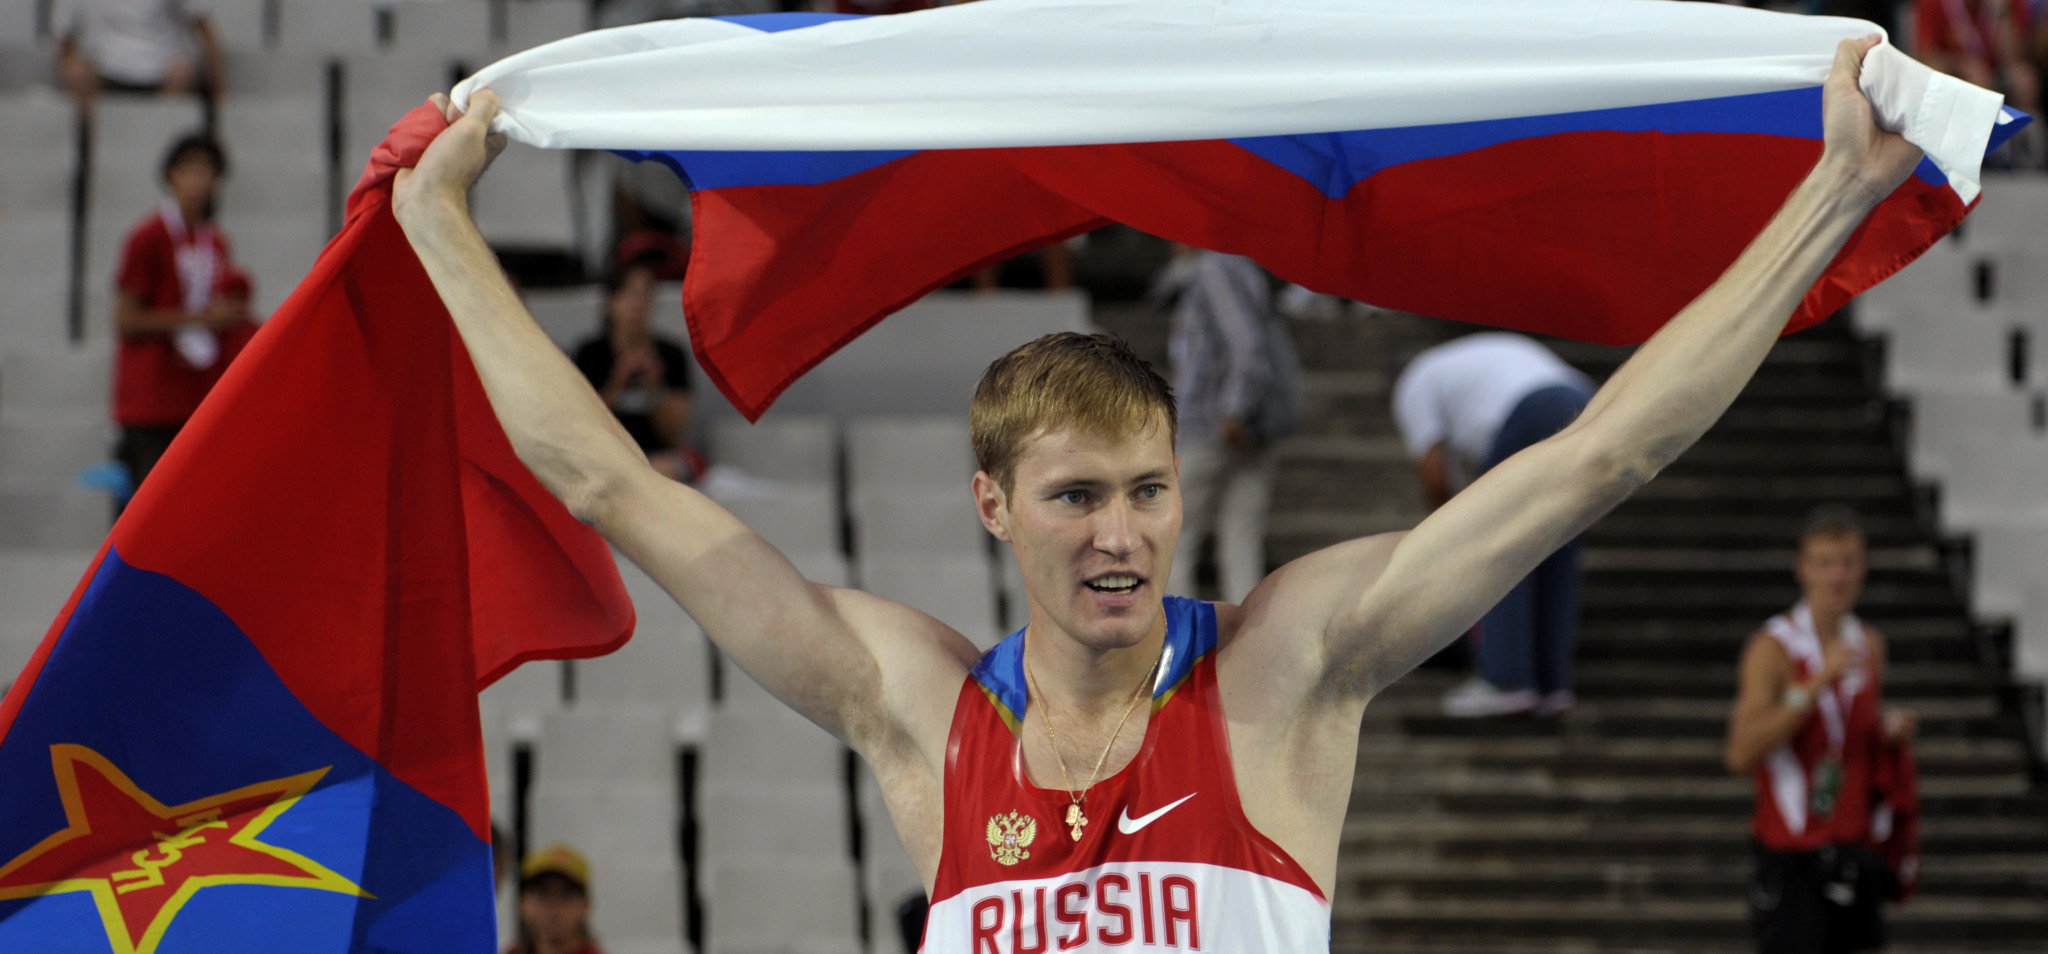 Russian high jumper appeals against CAS decision to uphold four-year ban